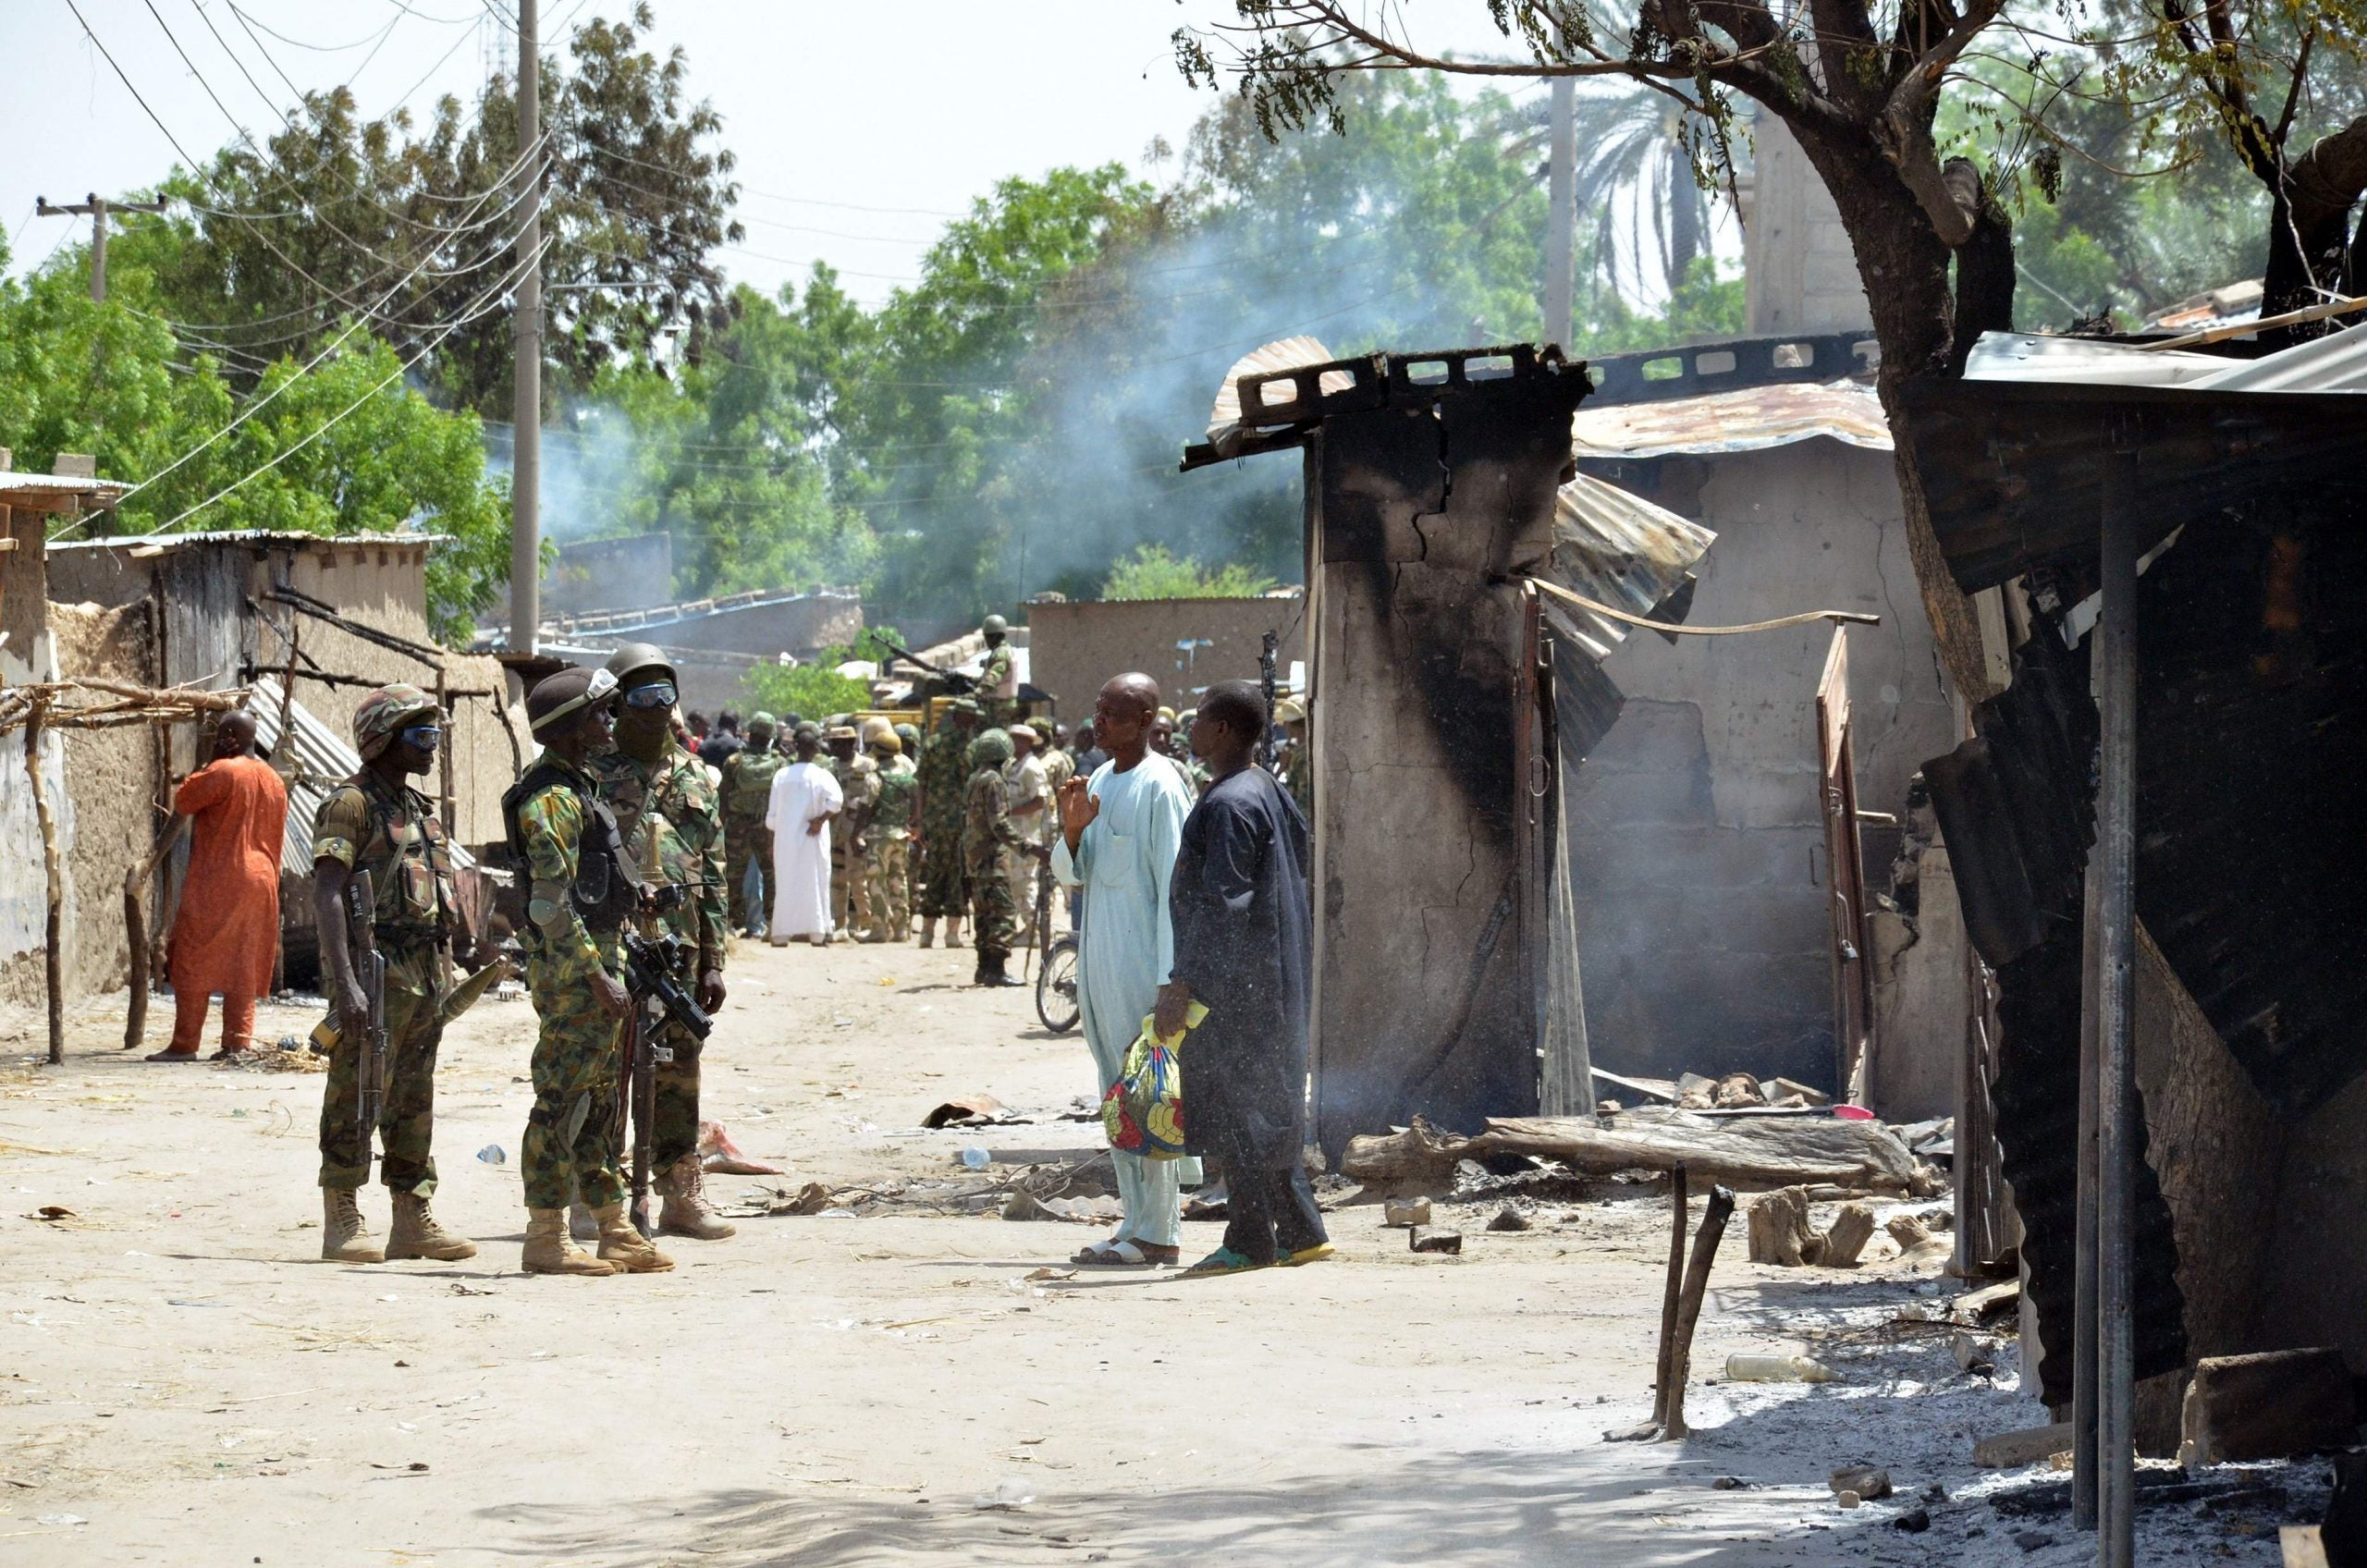 Scarred lands: visiting the villages Boko Haram left behind reveals the toxic legacy of terrorism